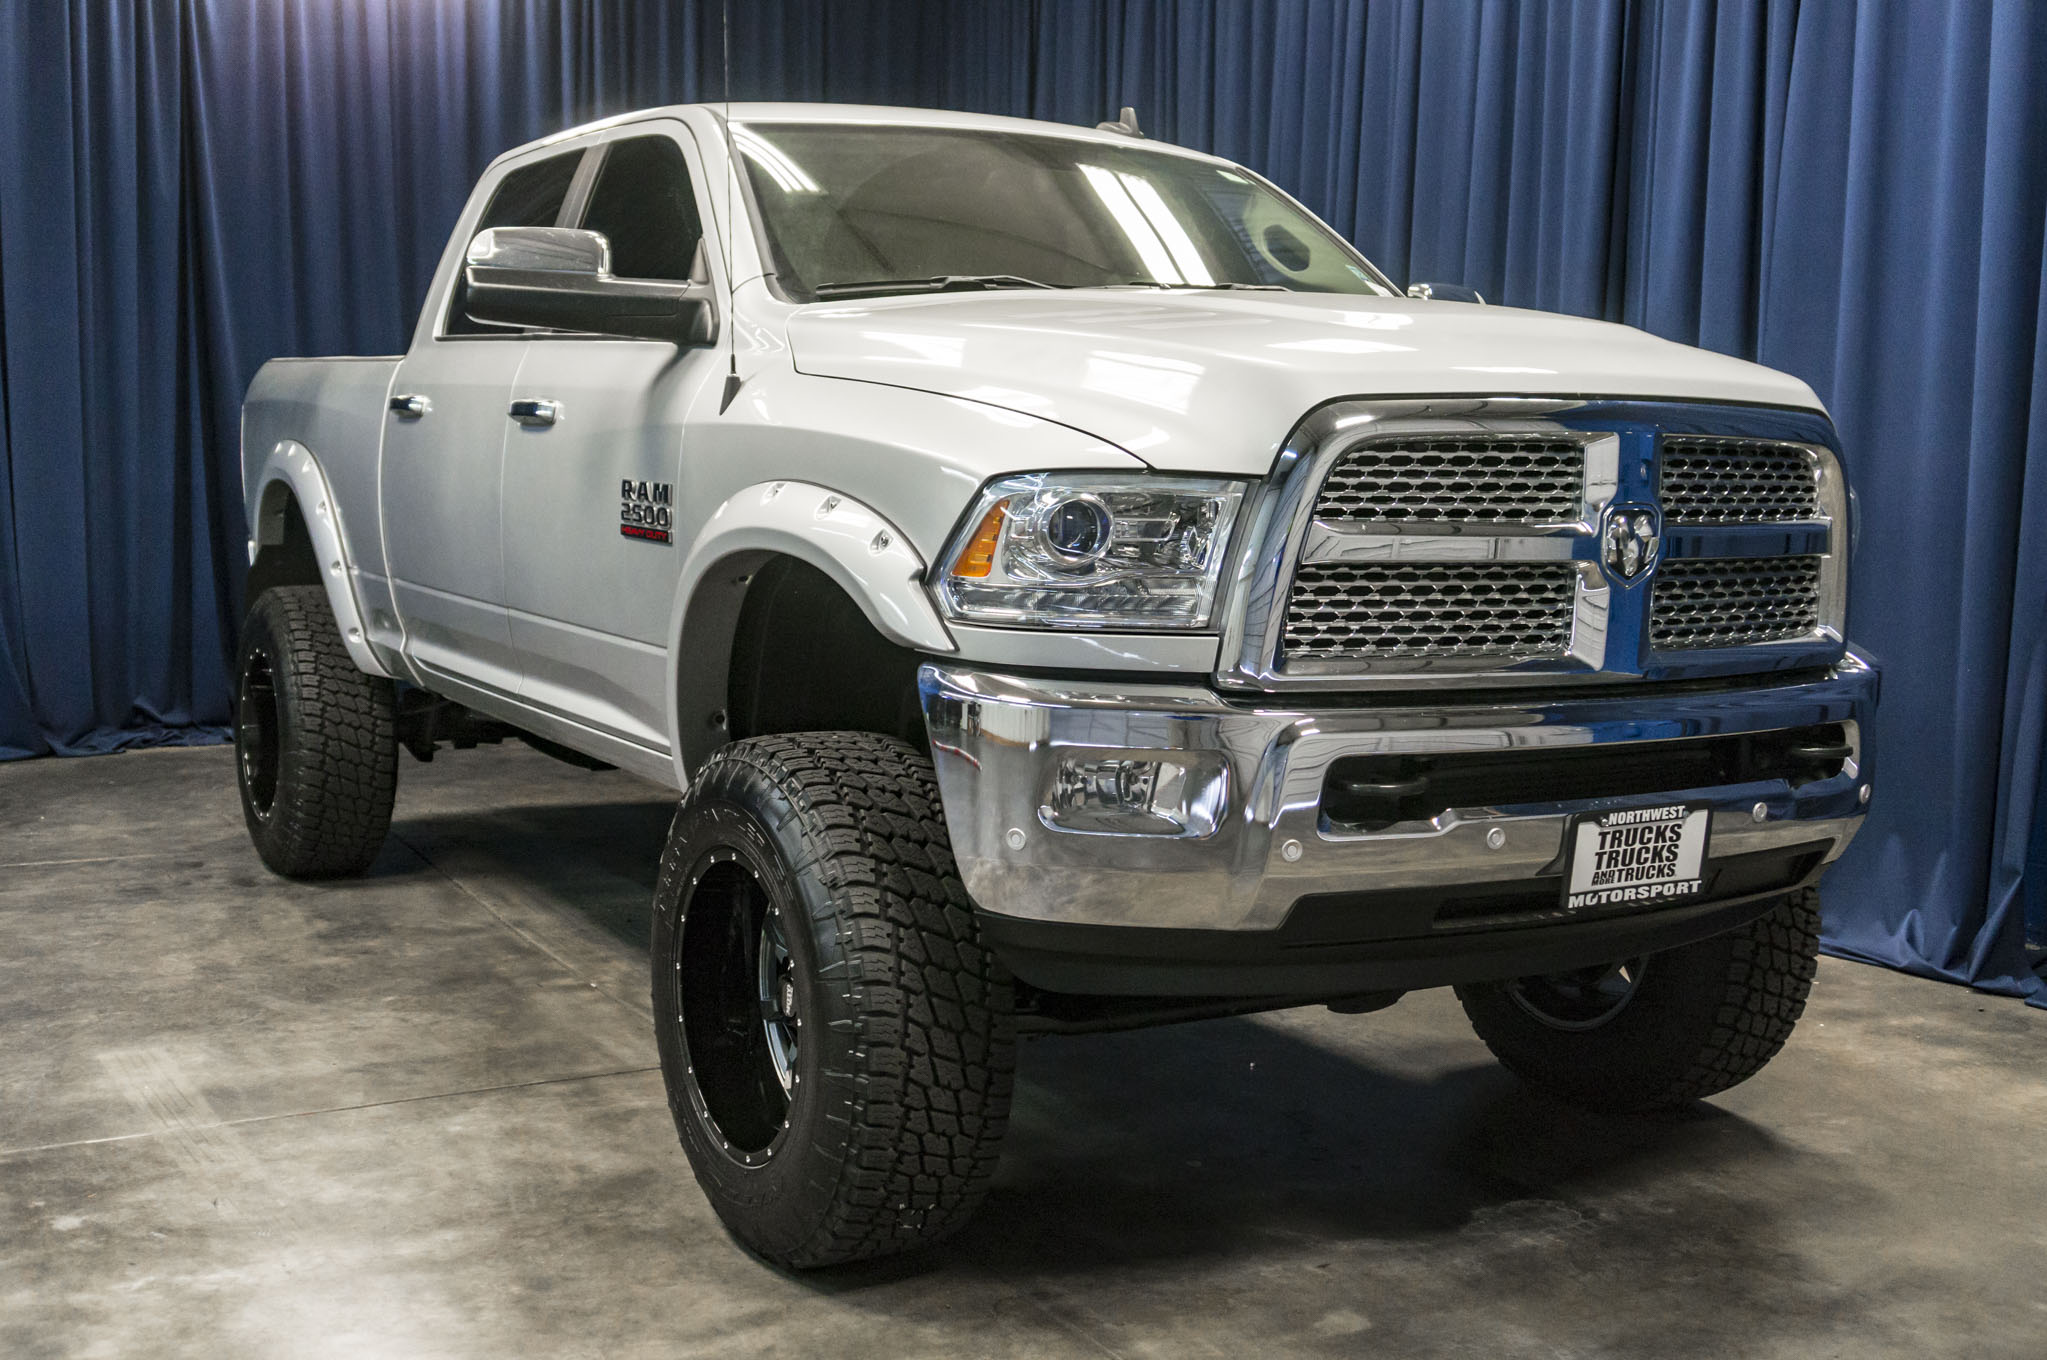 Lifted Ram 3500 >> Used Lifted 2016 Dodge Ram 2500 Laramie 4x4 Diesel Truck For Sale - 40496